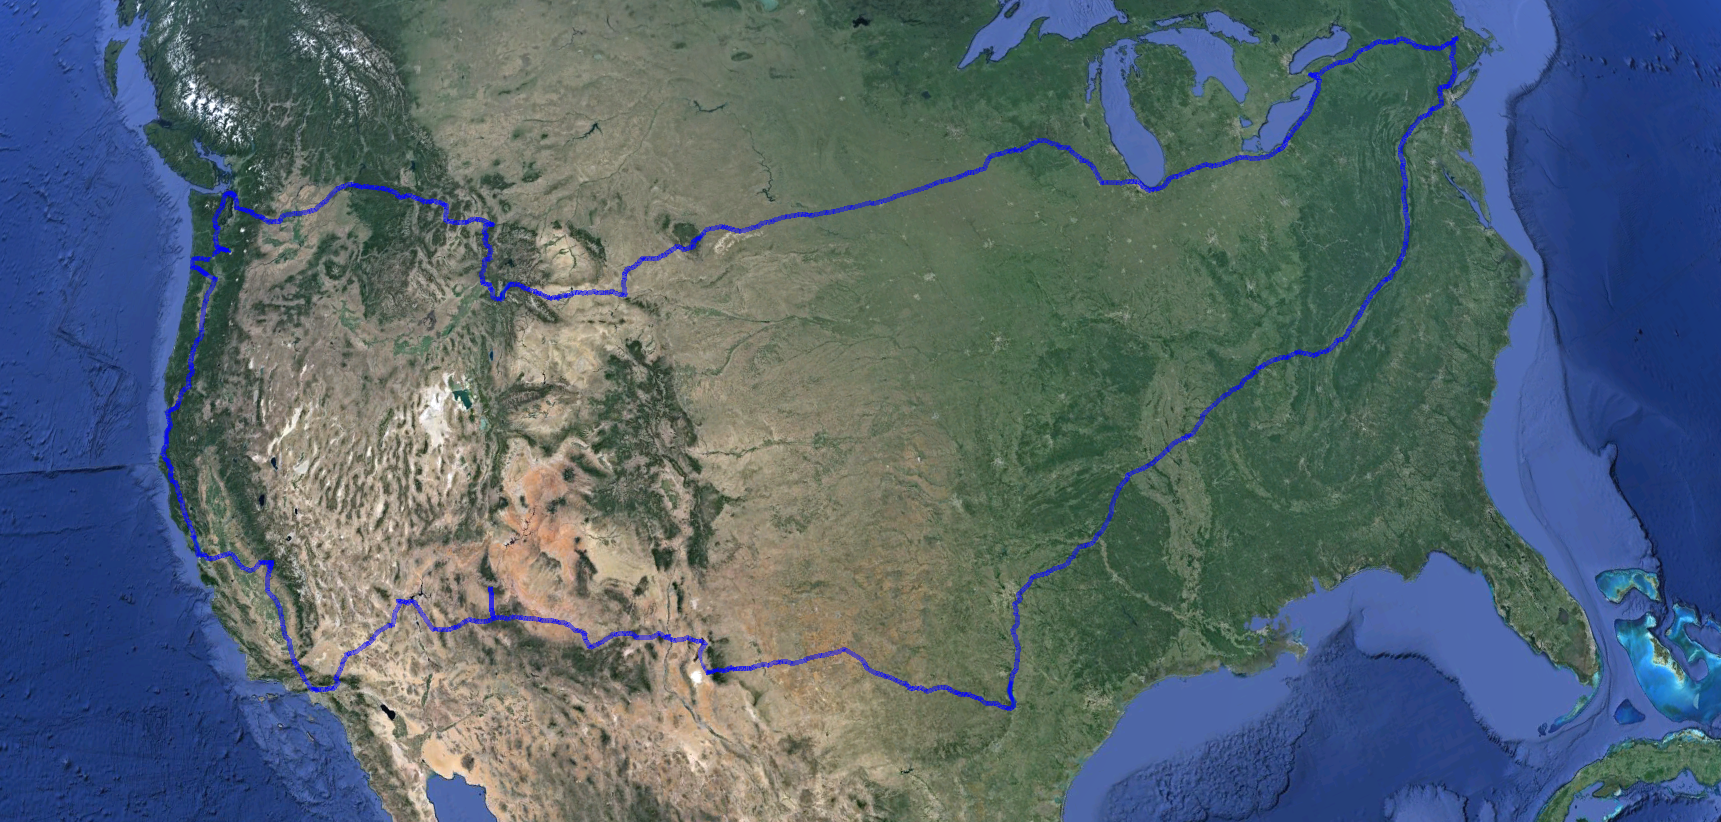 A very tentative Tiny House Road Trip Part 2 map outline!